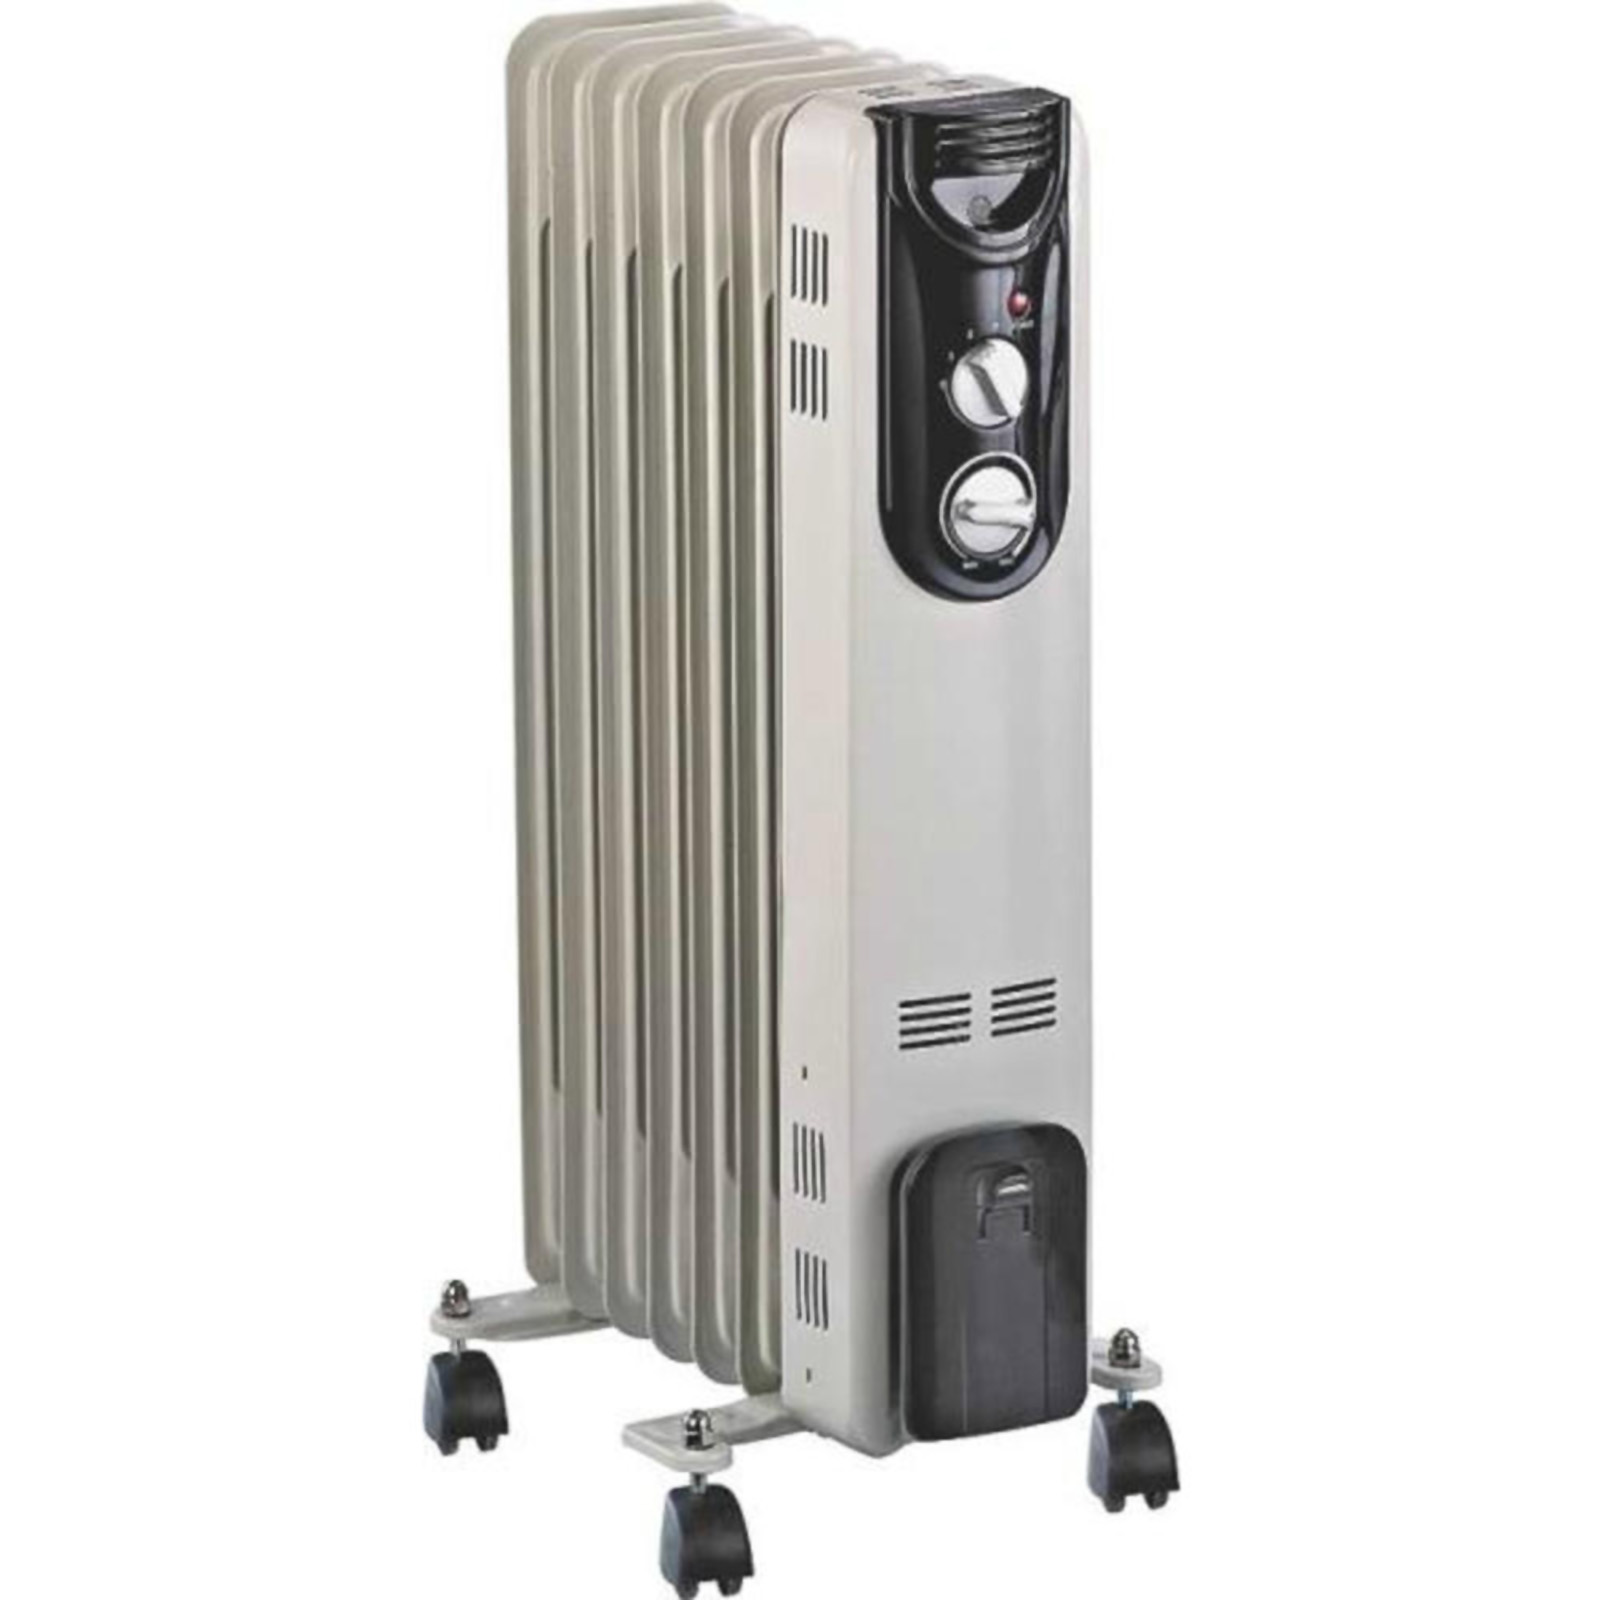 Wattage Radiator Homebasix Cyb20 7 Oil Filled Radiator Heater Sears Marketplace